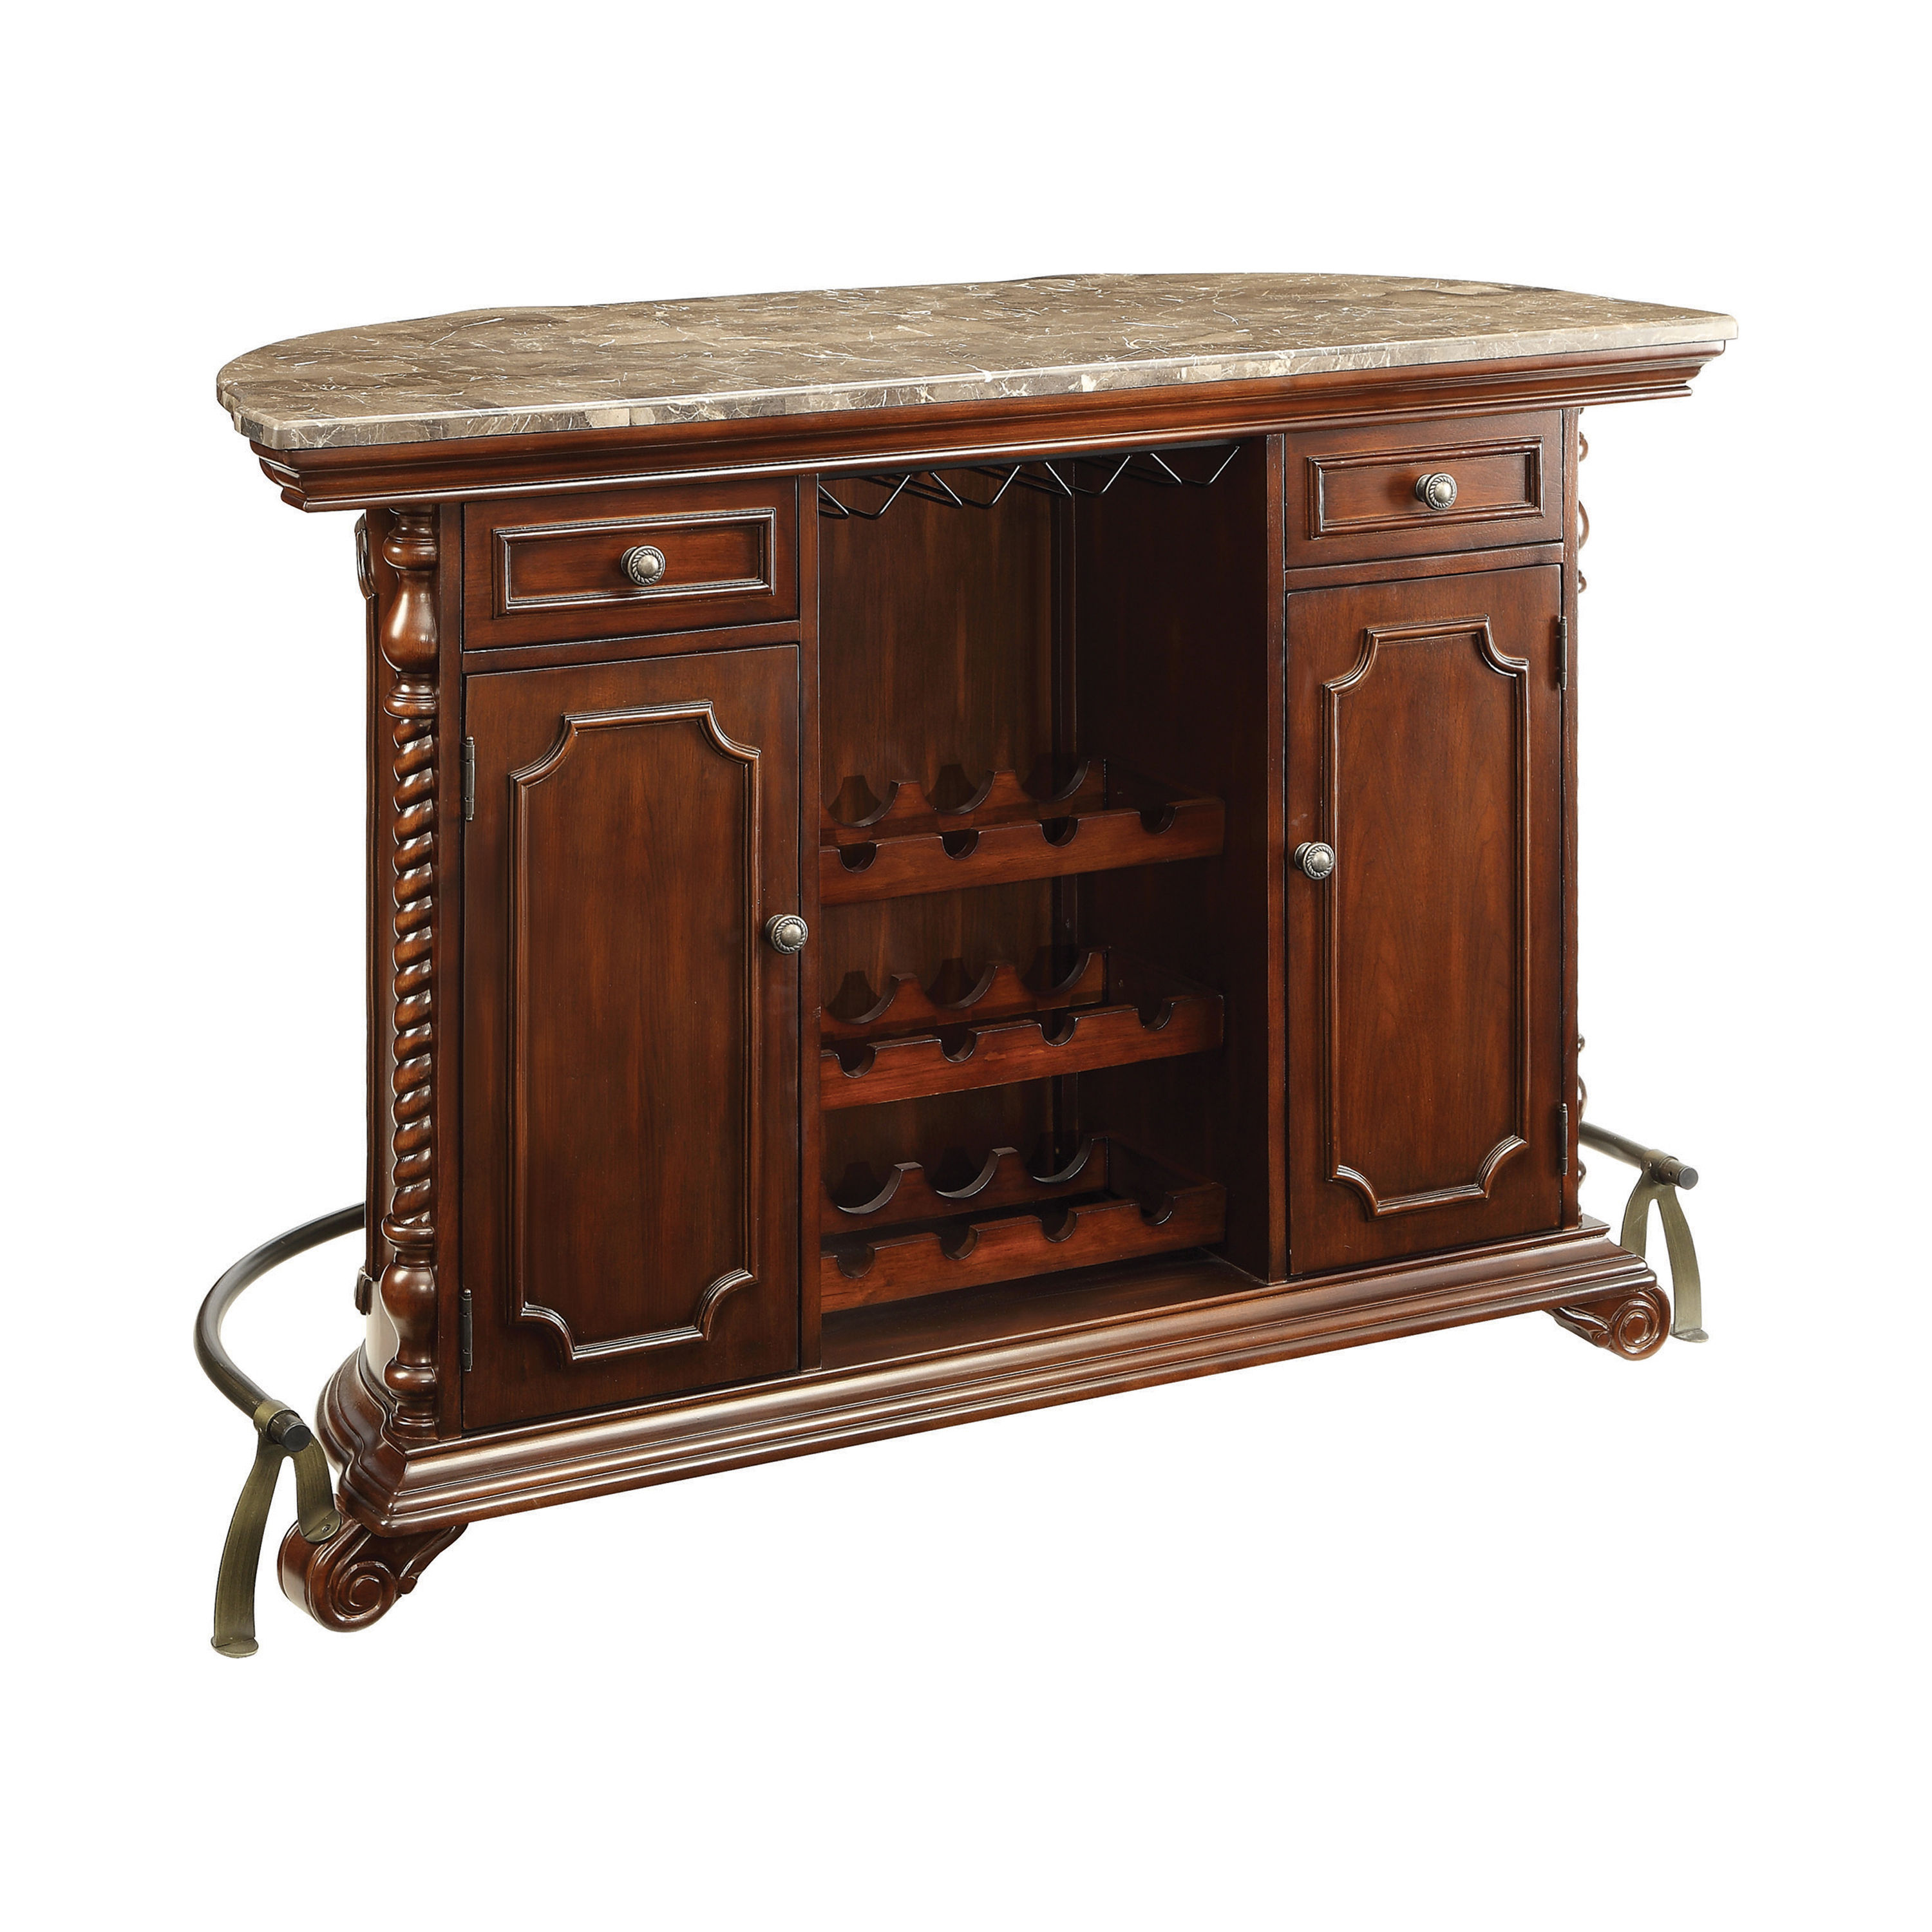 Coaster Furniture Cherry Marble Top Bar Unit | The Classy Home